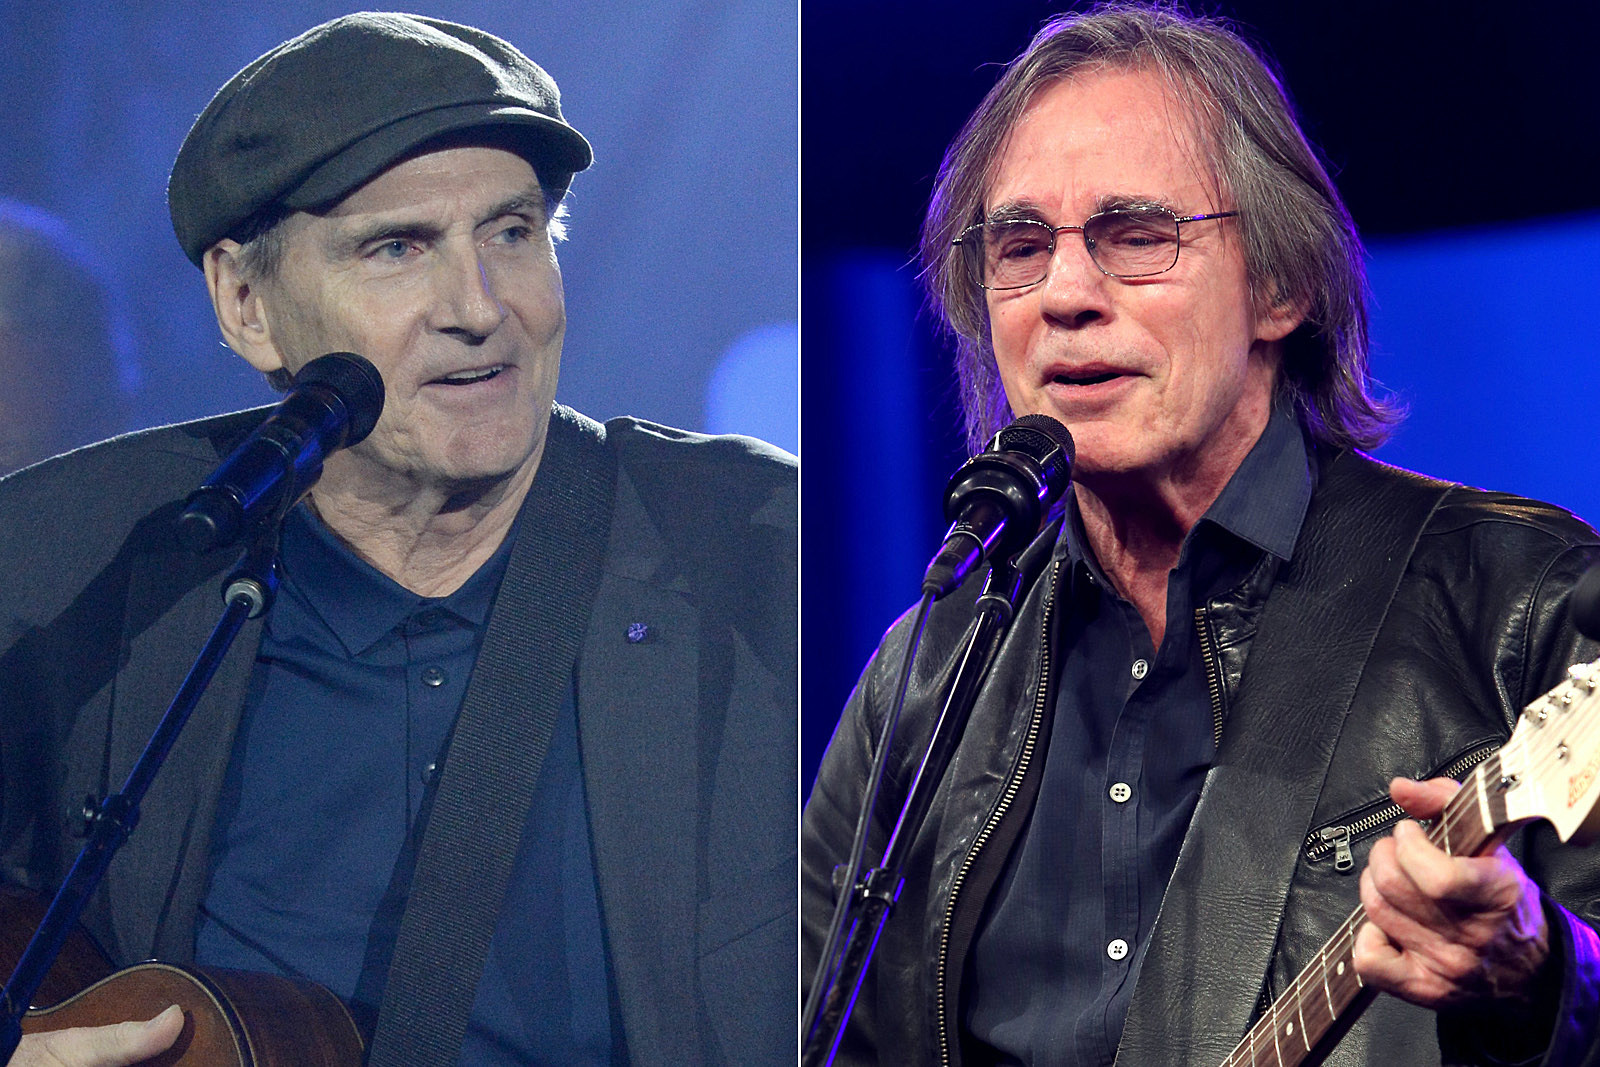 James Taylor Announces New Album, Tour With Jackson Browne